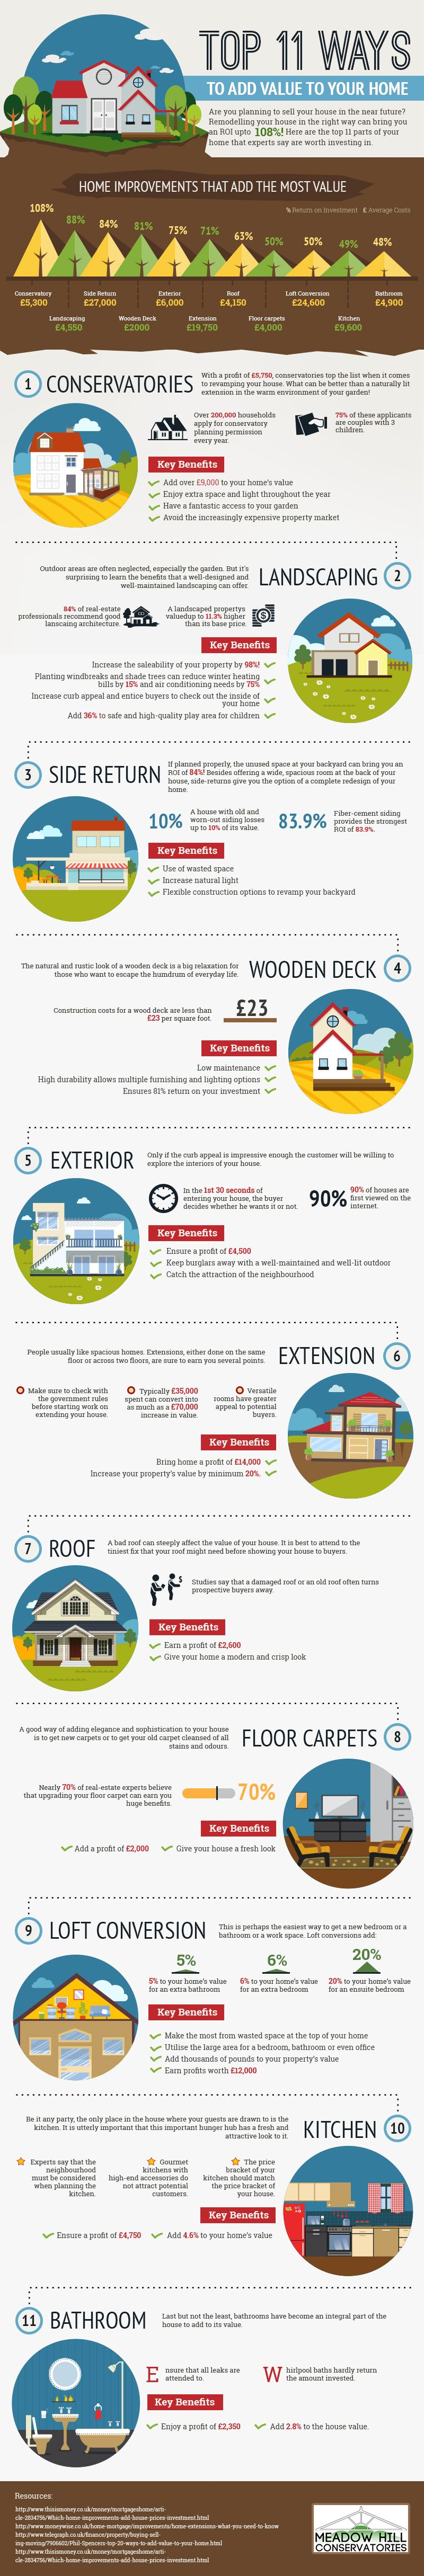 Best Ways to Add Value to Your Home #infographic